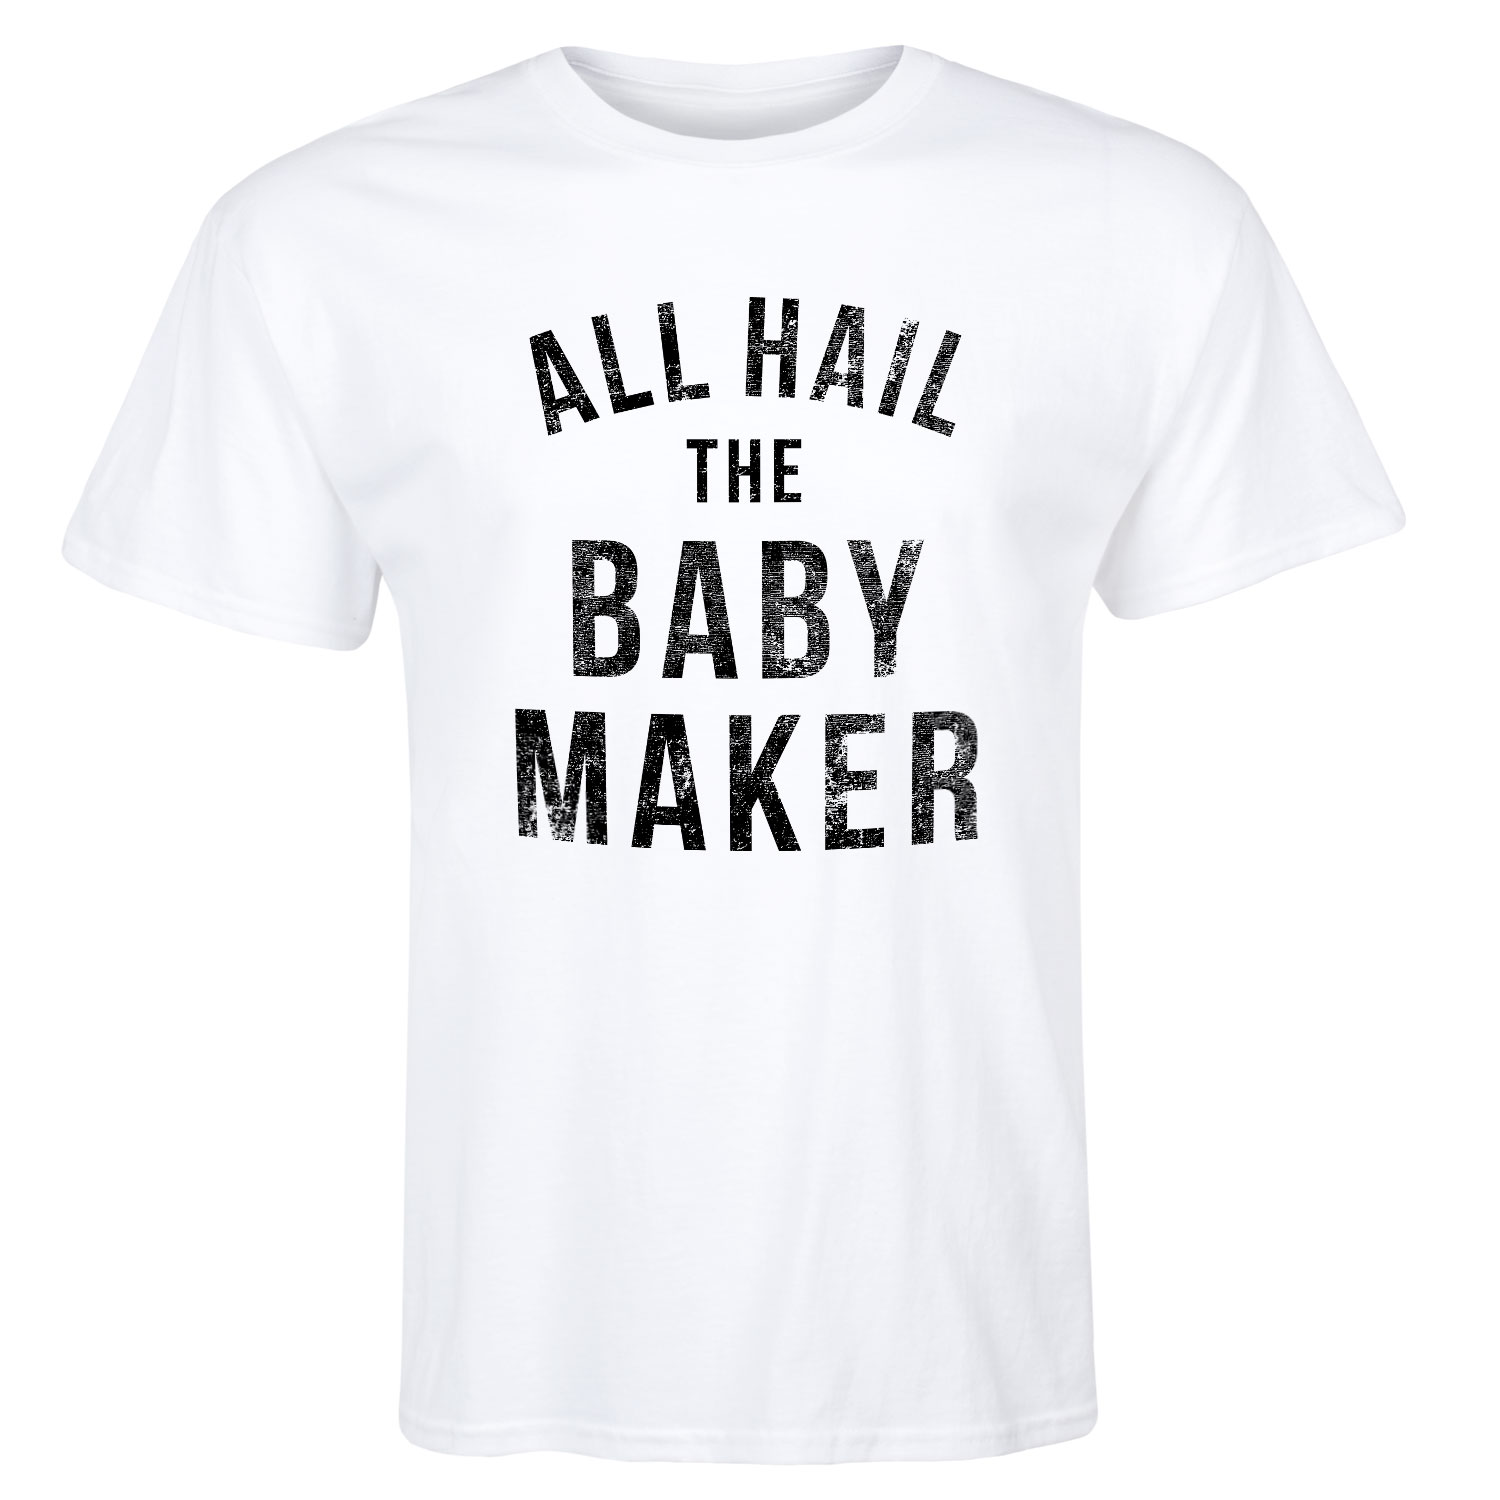 All Hail The Babymaker  - Adult Short Sleeve Tee